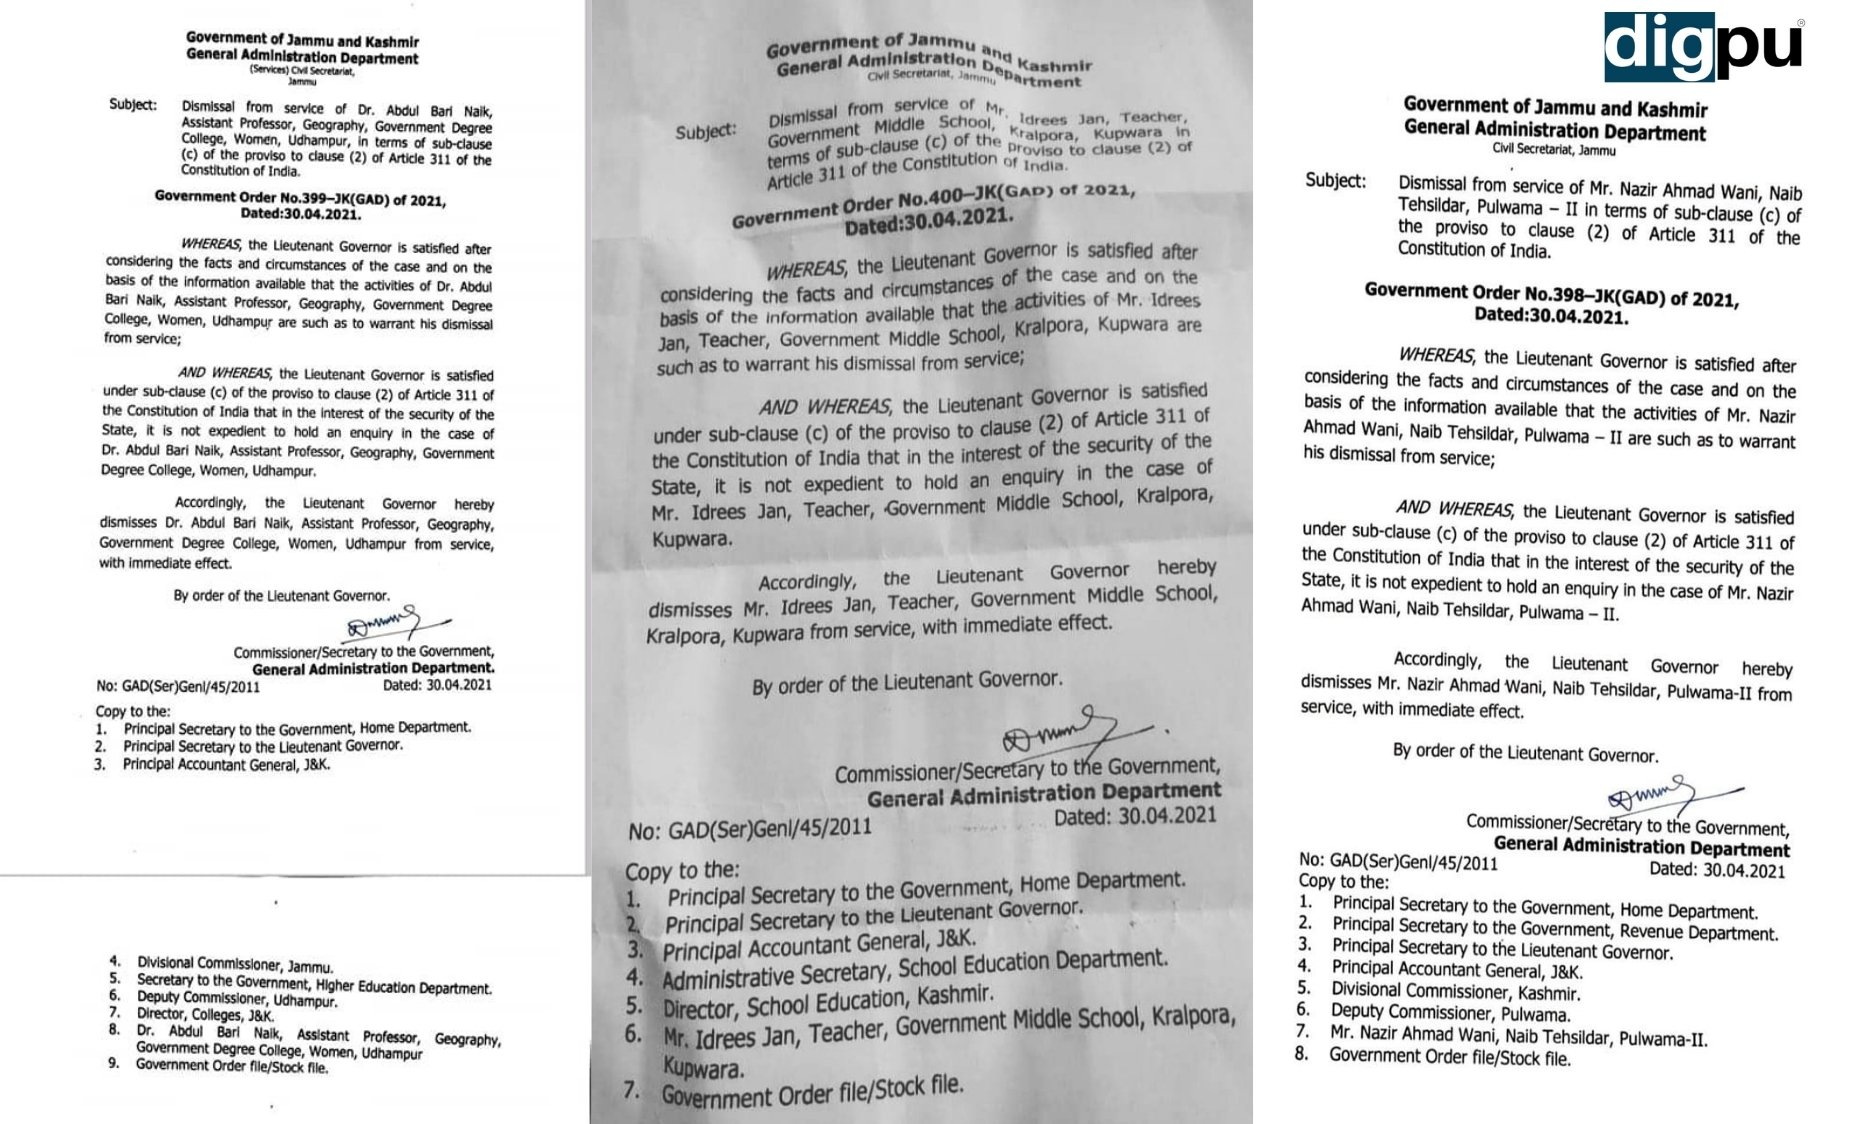 Invoking Article 311, three government employees dismissed in J&K - Digpu News